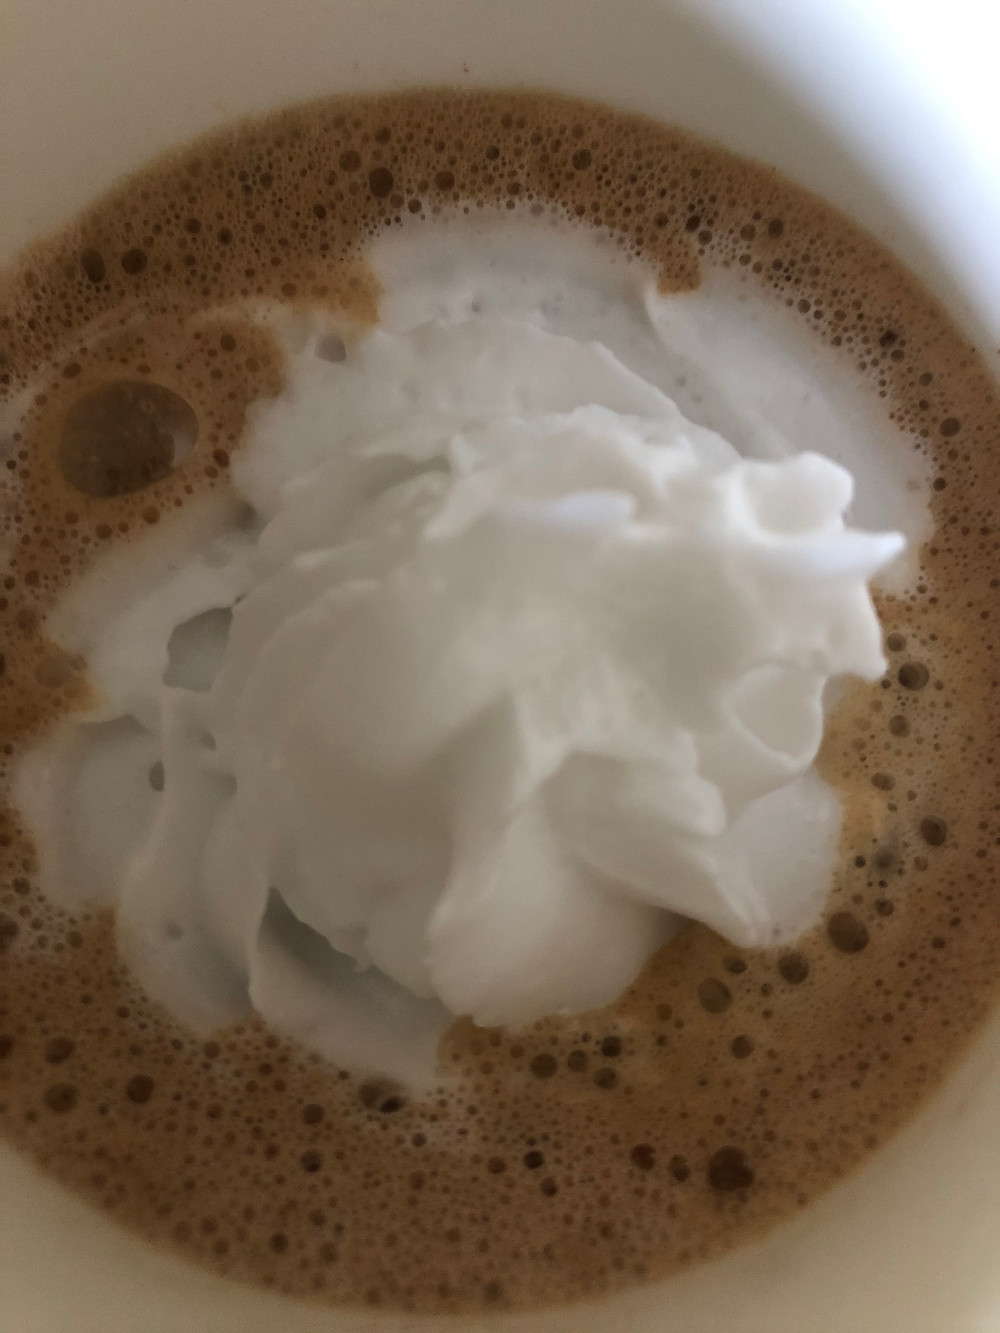 low carb keto sugar free peppermint mocha with whipped cream in a white mug